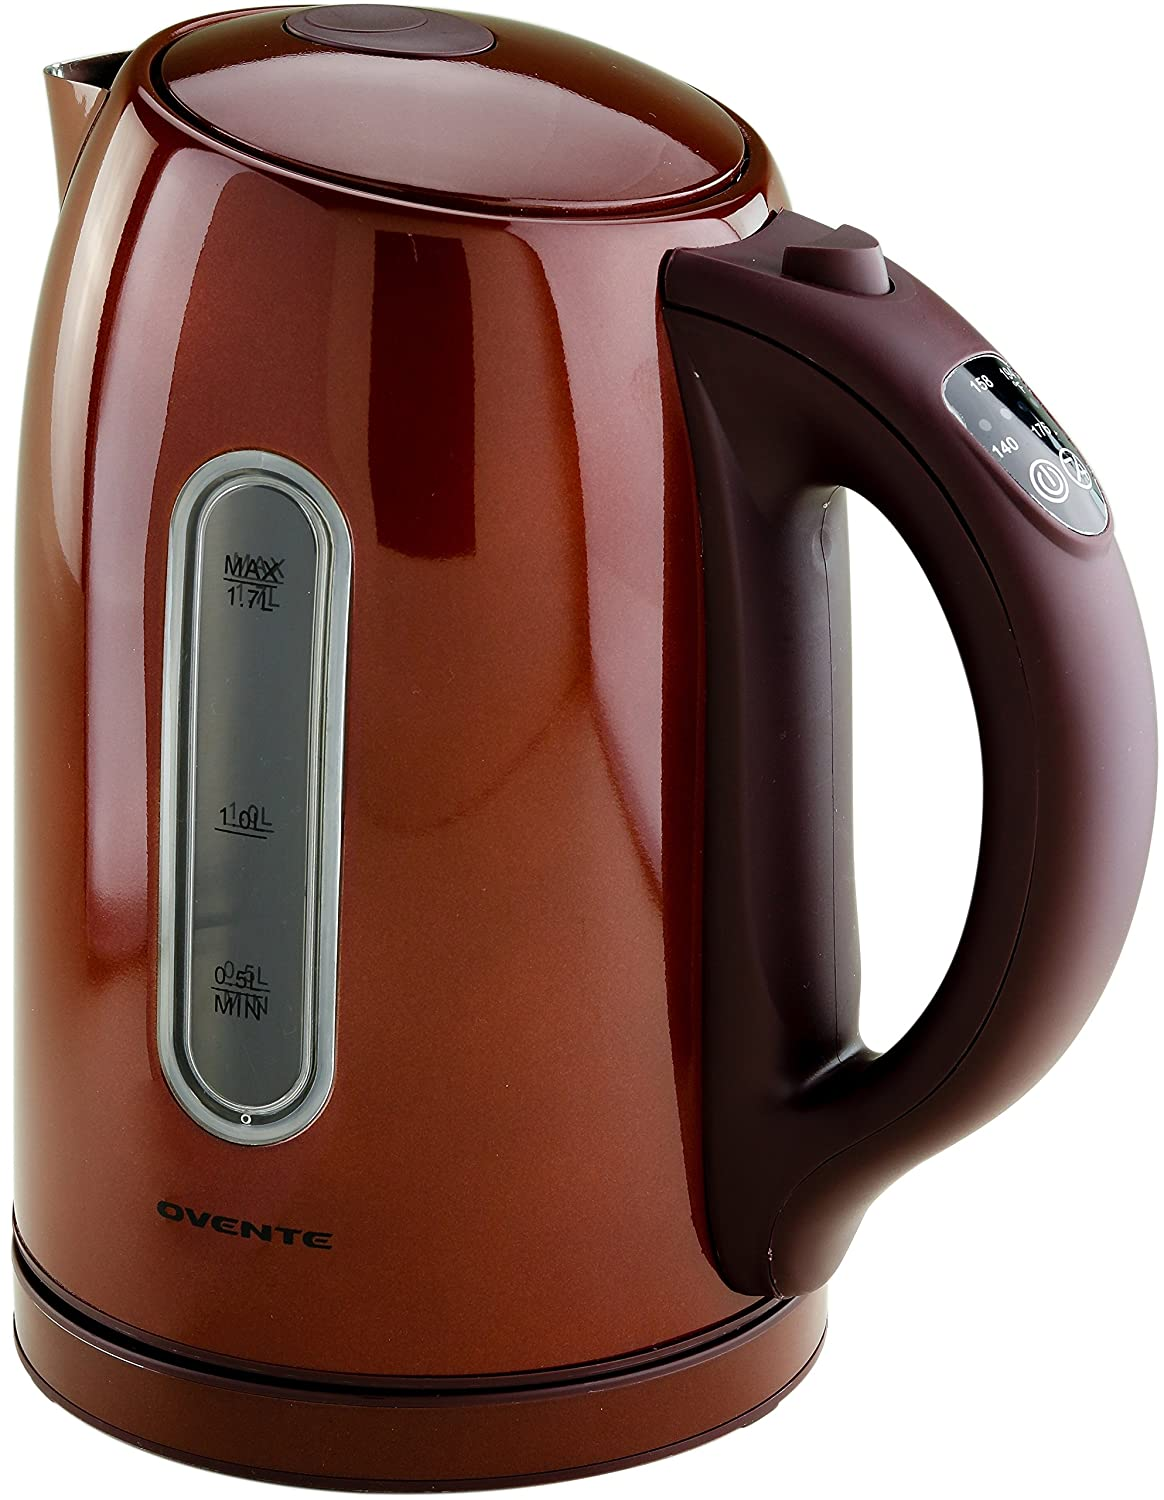 Ovente 1.7 Liter BPA-Free Temperature Control Stainless Steel Cordless Electric Kettle with Keep Warm Function, Auto Shut-Off and Boil-Dry Protection, Chocolate Brown, WITH BEEP (KS88BR)